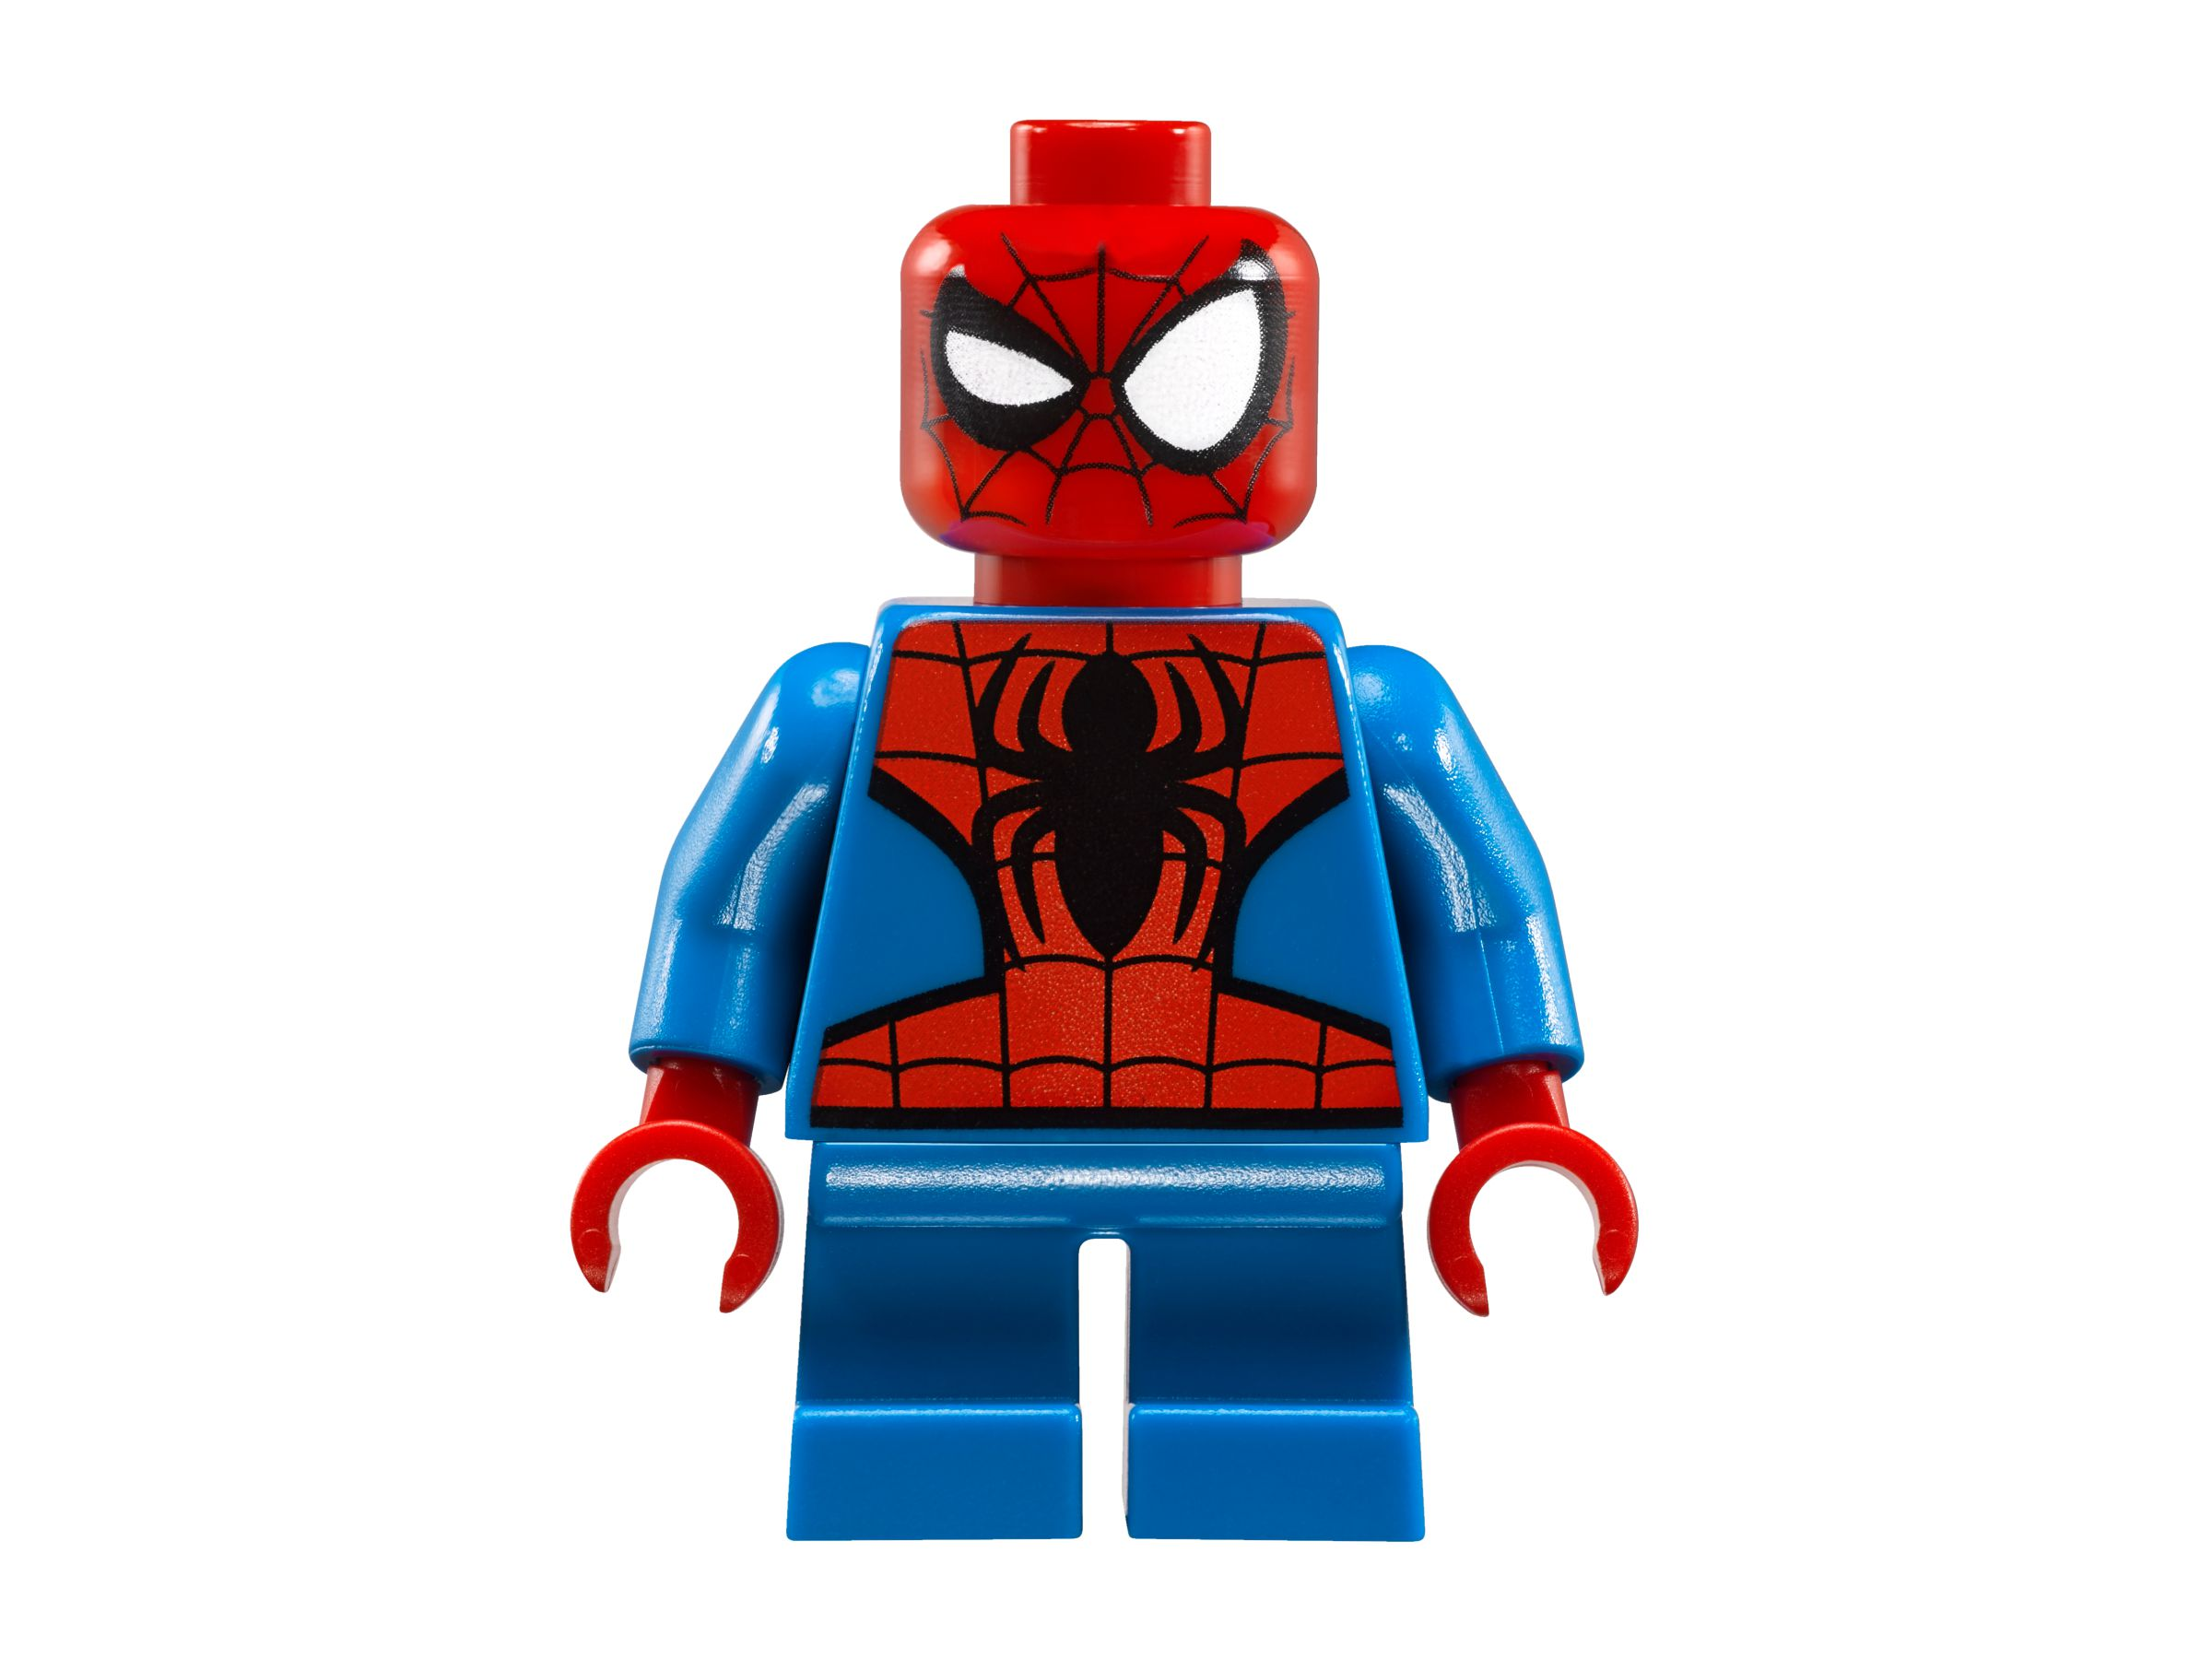 LEGO Super Heroes 76064 Mighty Micros: Spider-Man vs. Green Goblin LEGO_76064_alt6.jpg